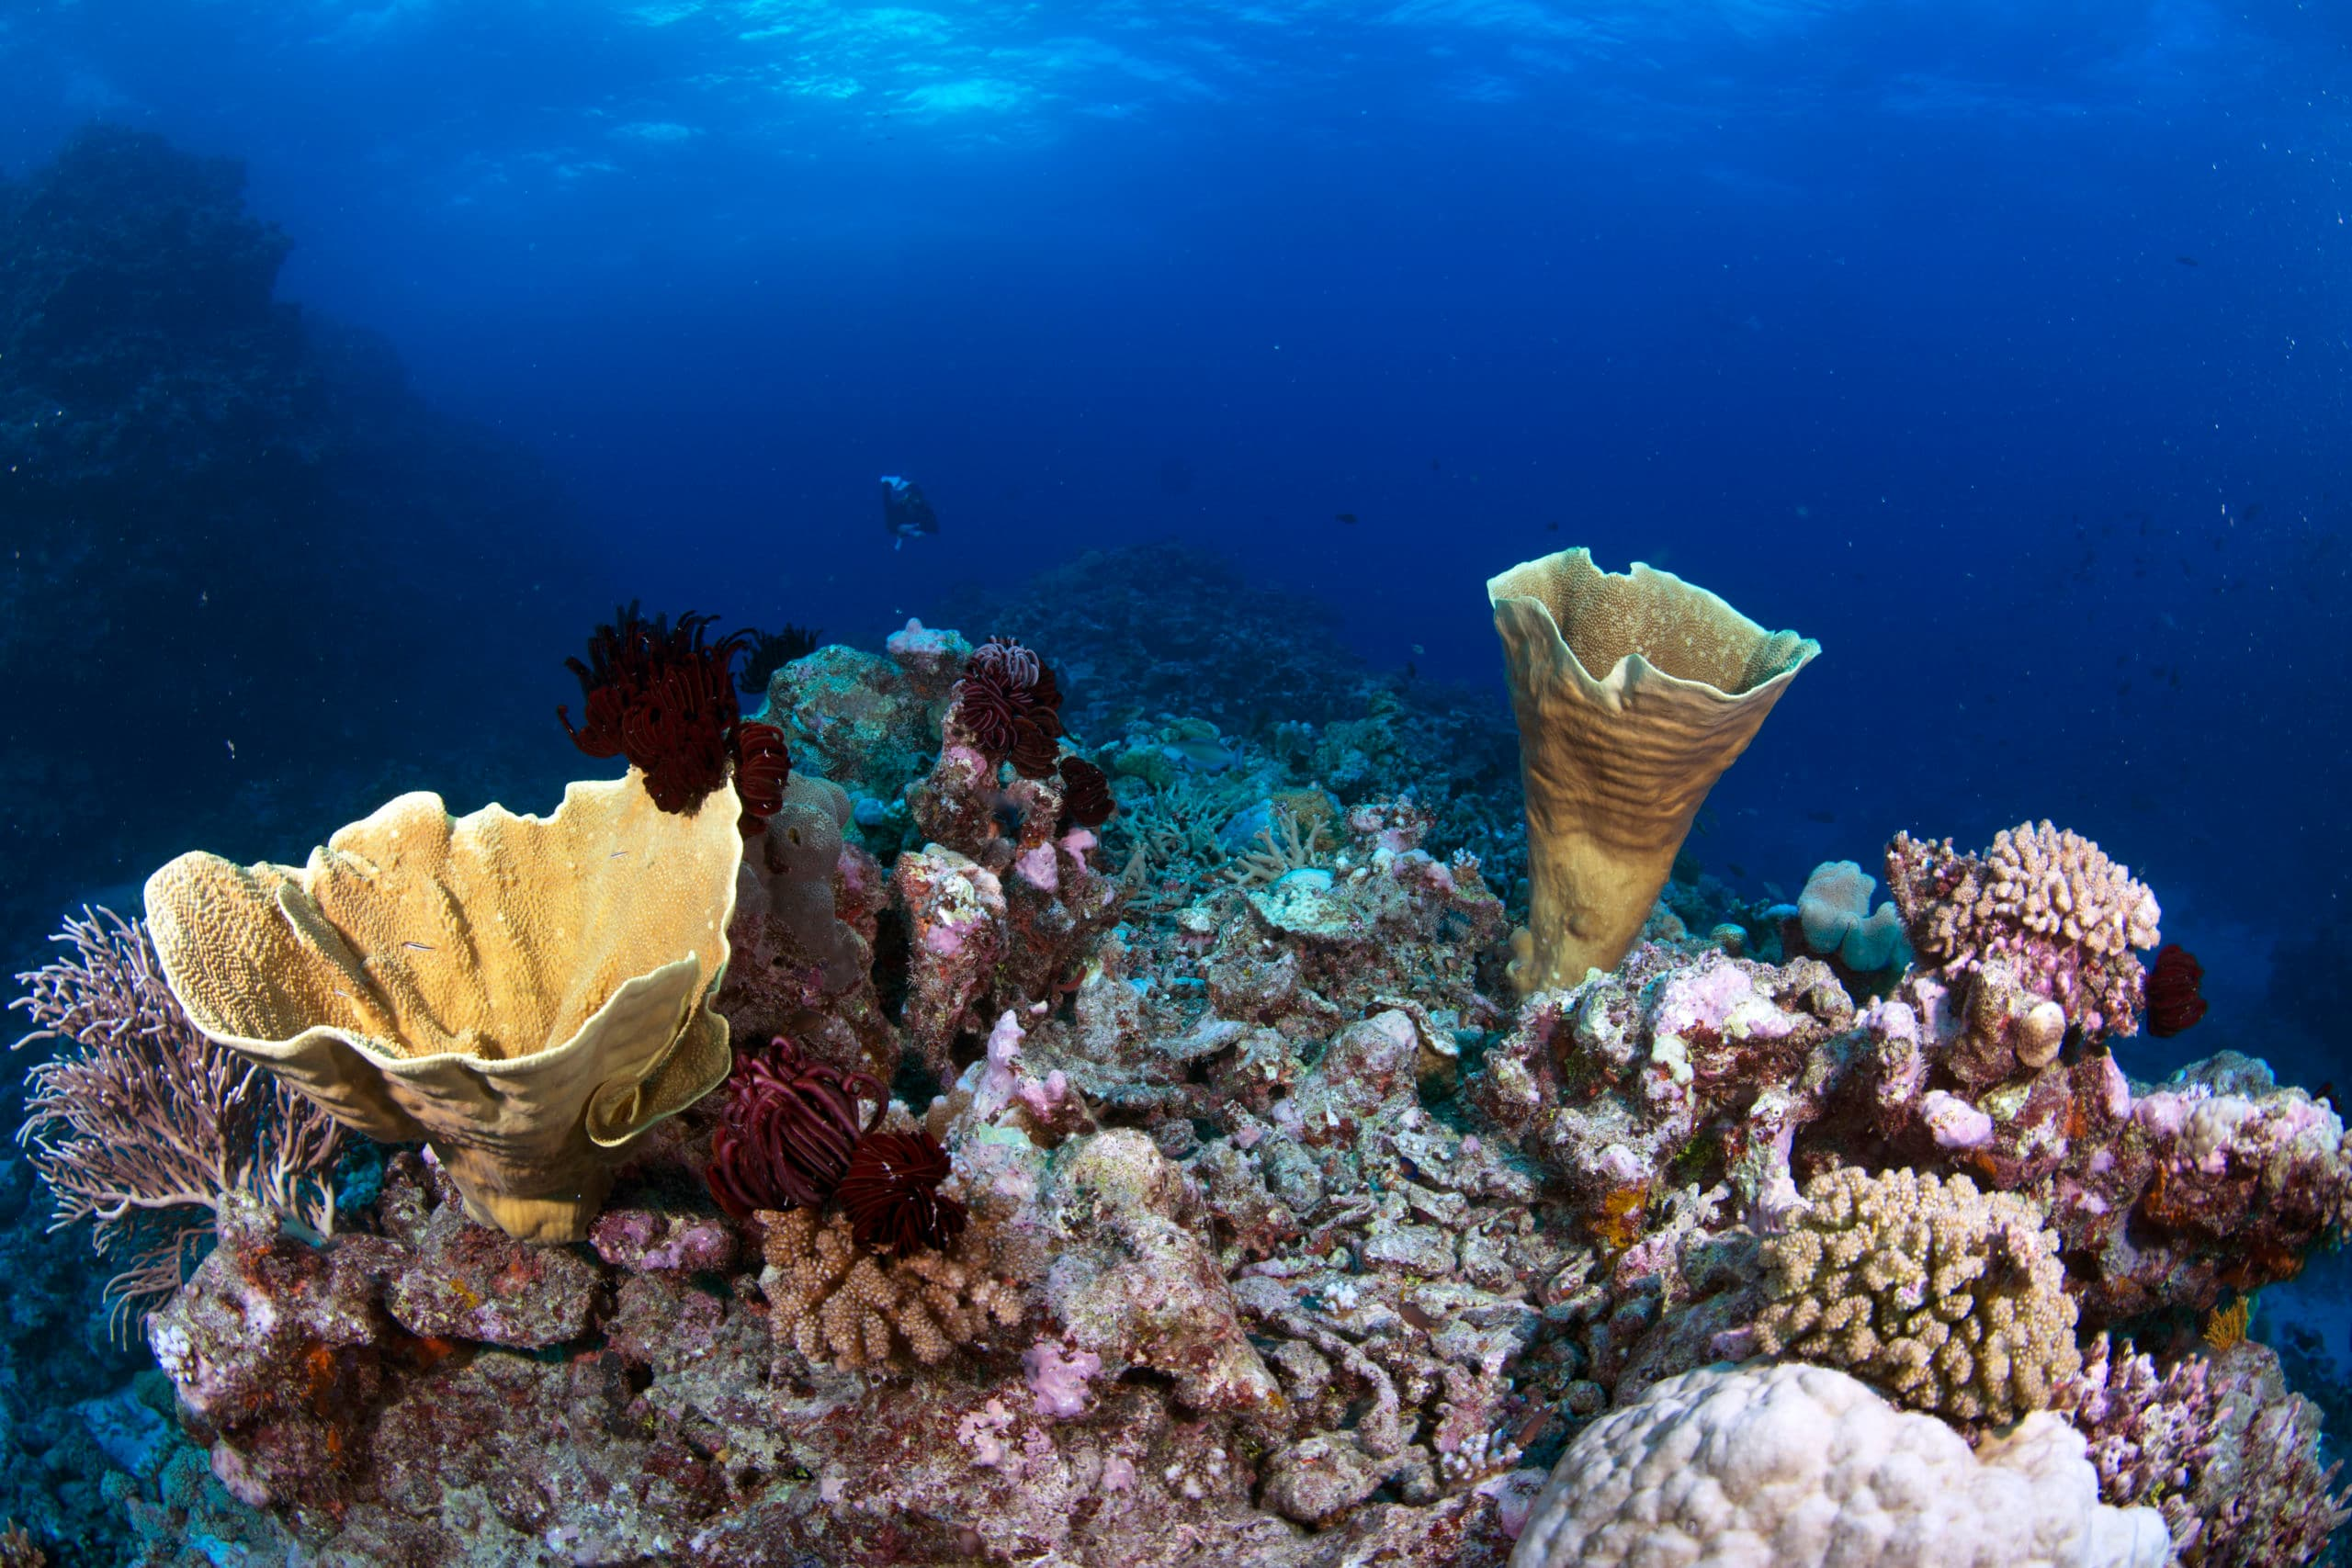 Hard coral coverage provides a haven for a myriad of small reef fish